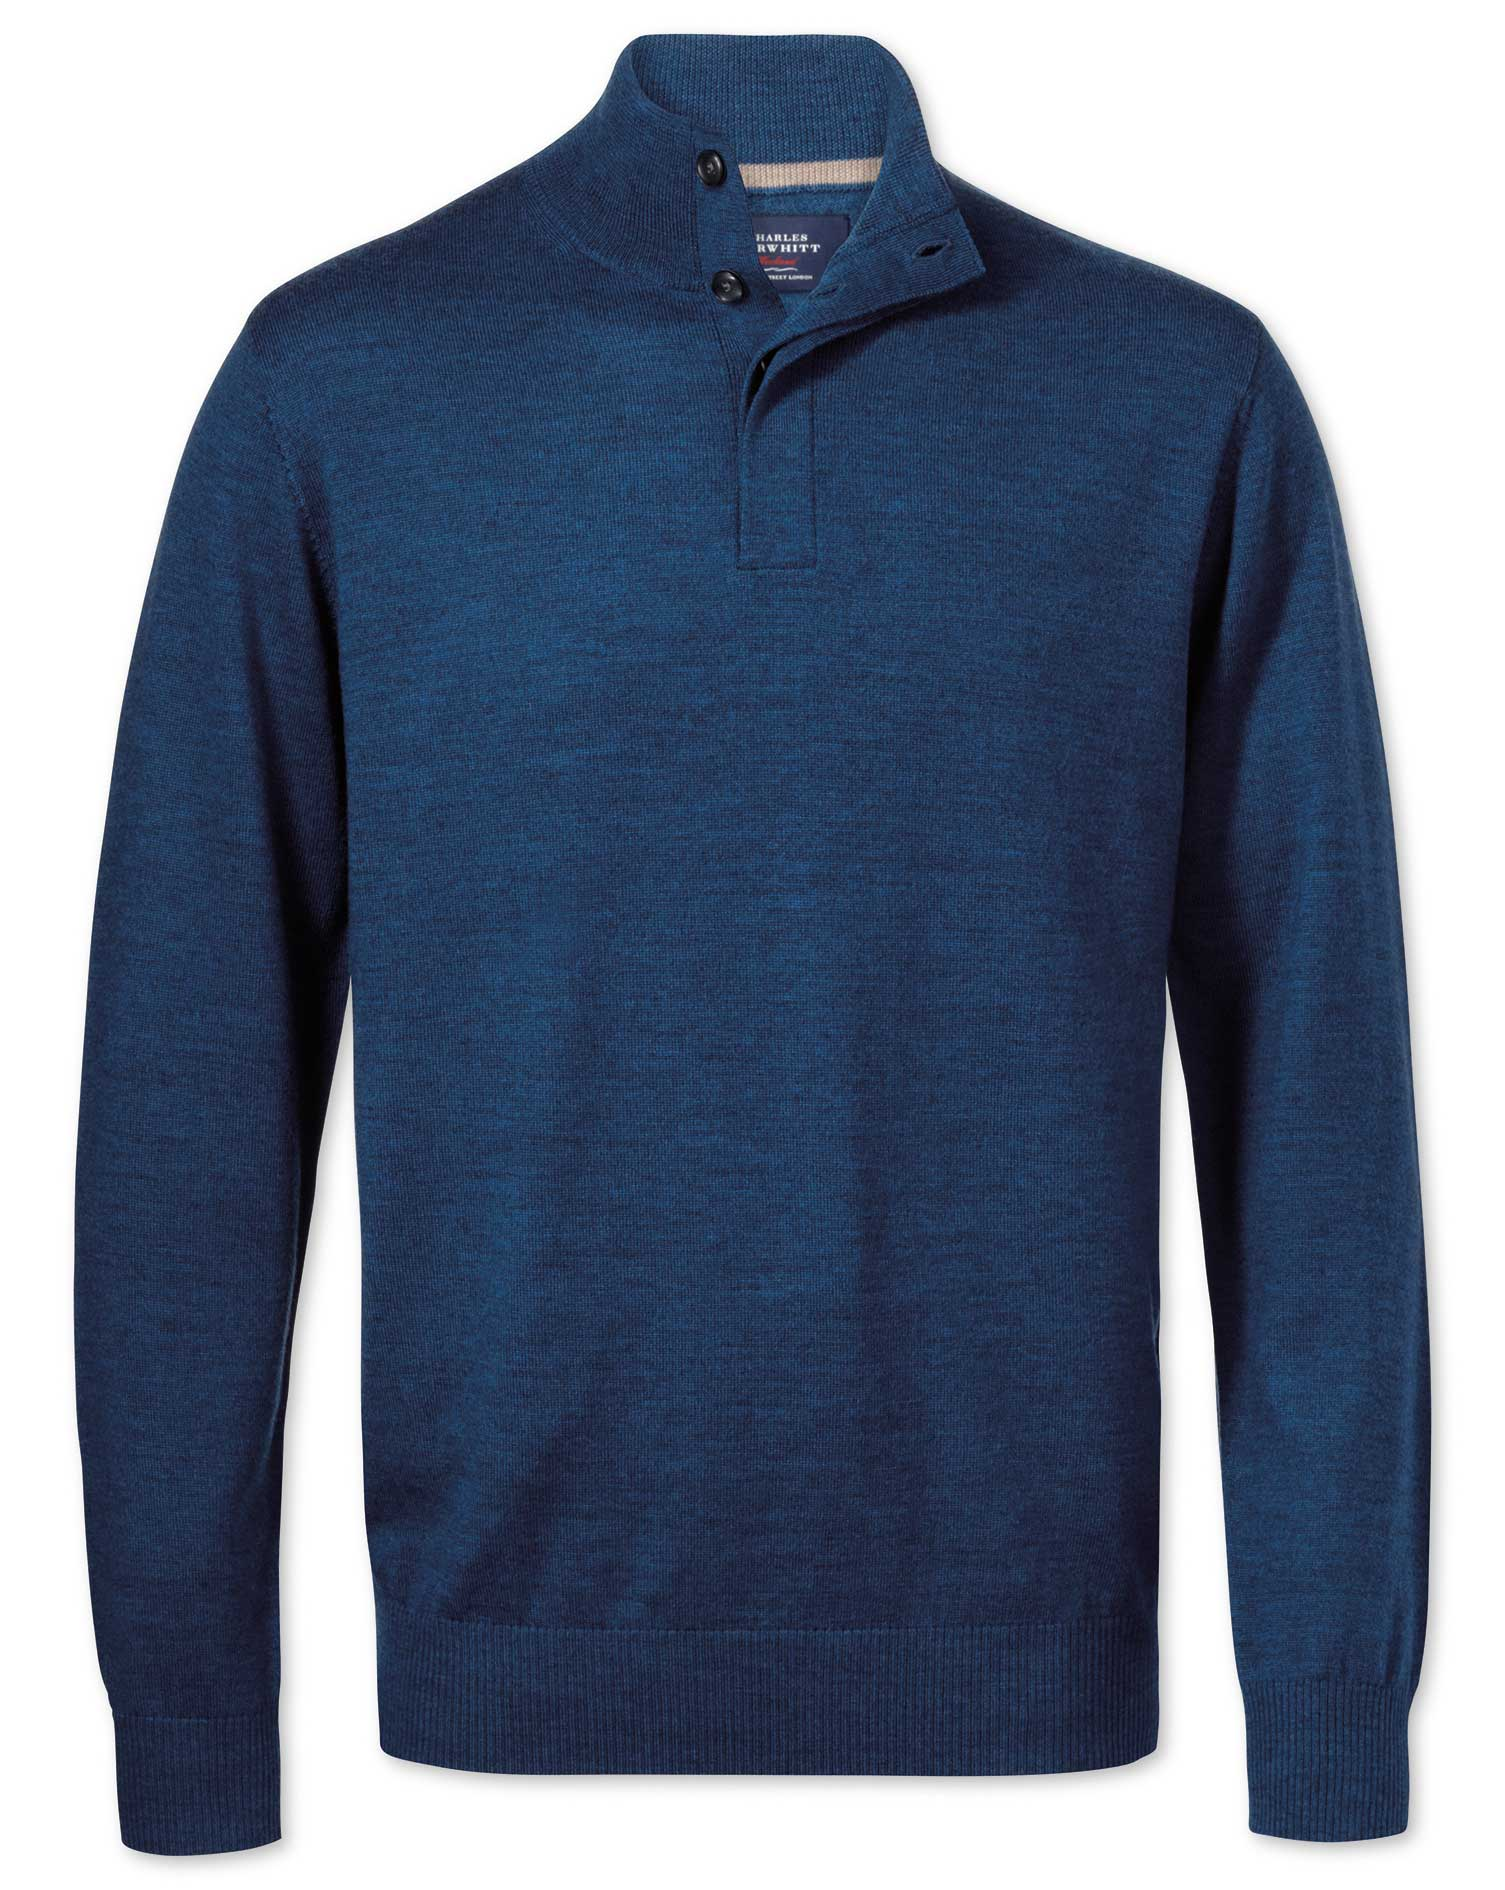 Mid Blue Merino Wool Button Neck Jumper Size XL by Charles Tyrwhitt